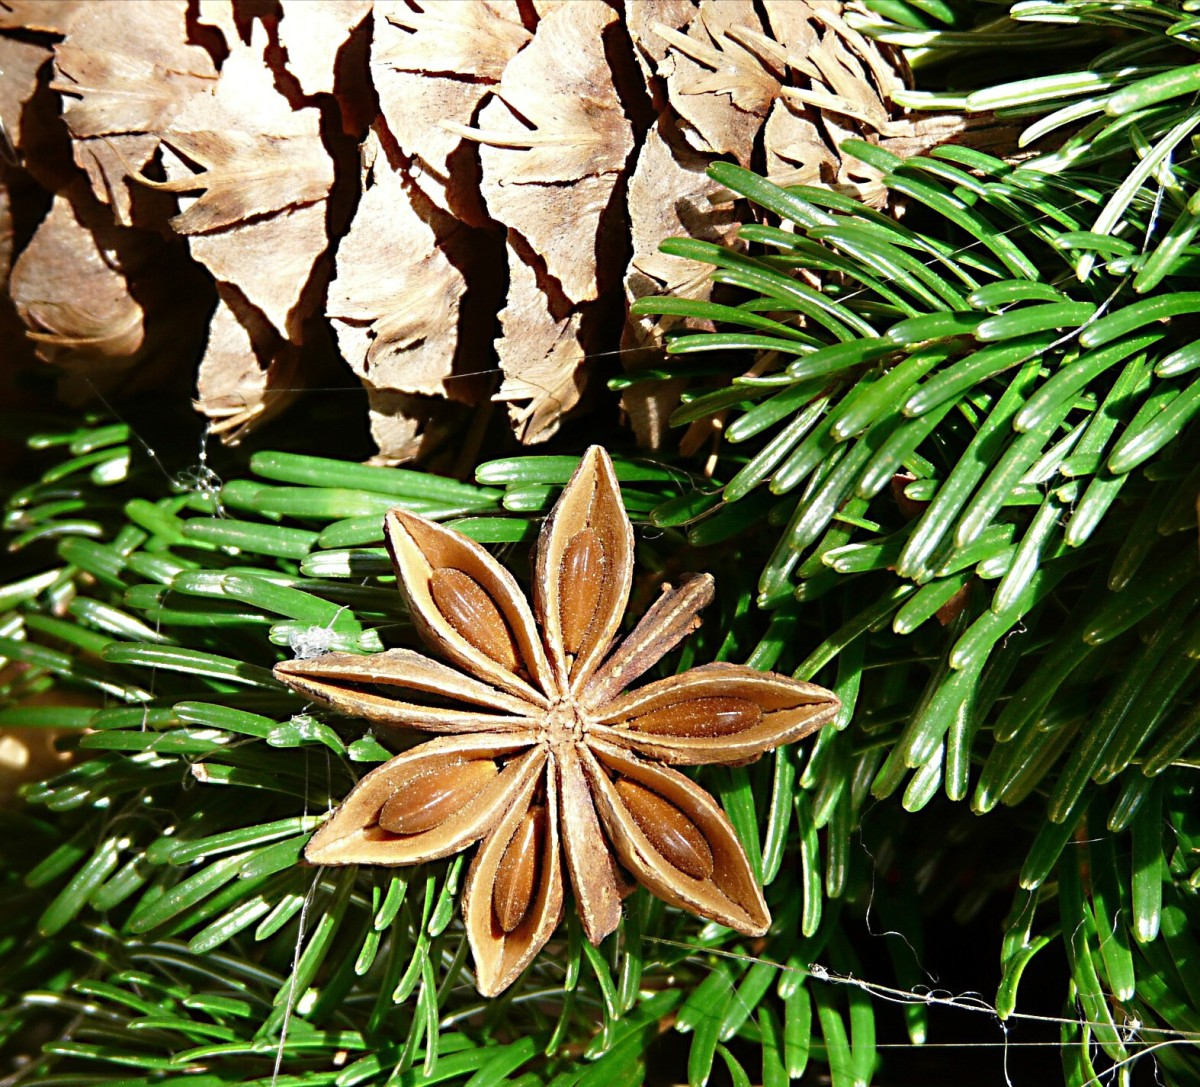 Star anise as part of an Advent wreath